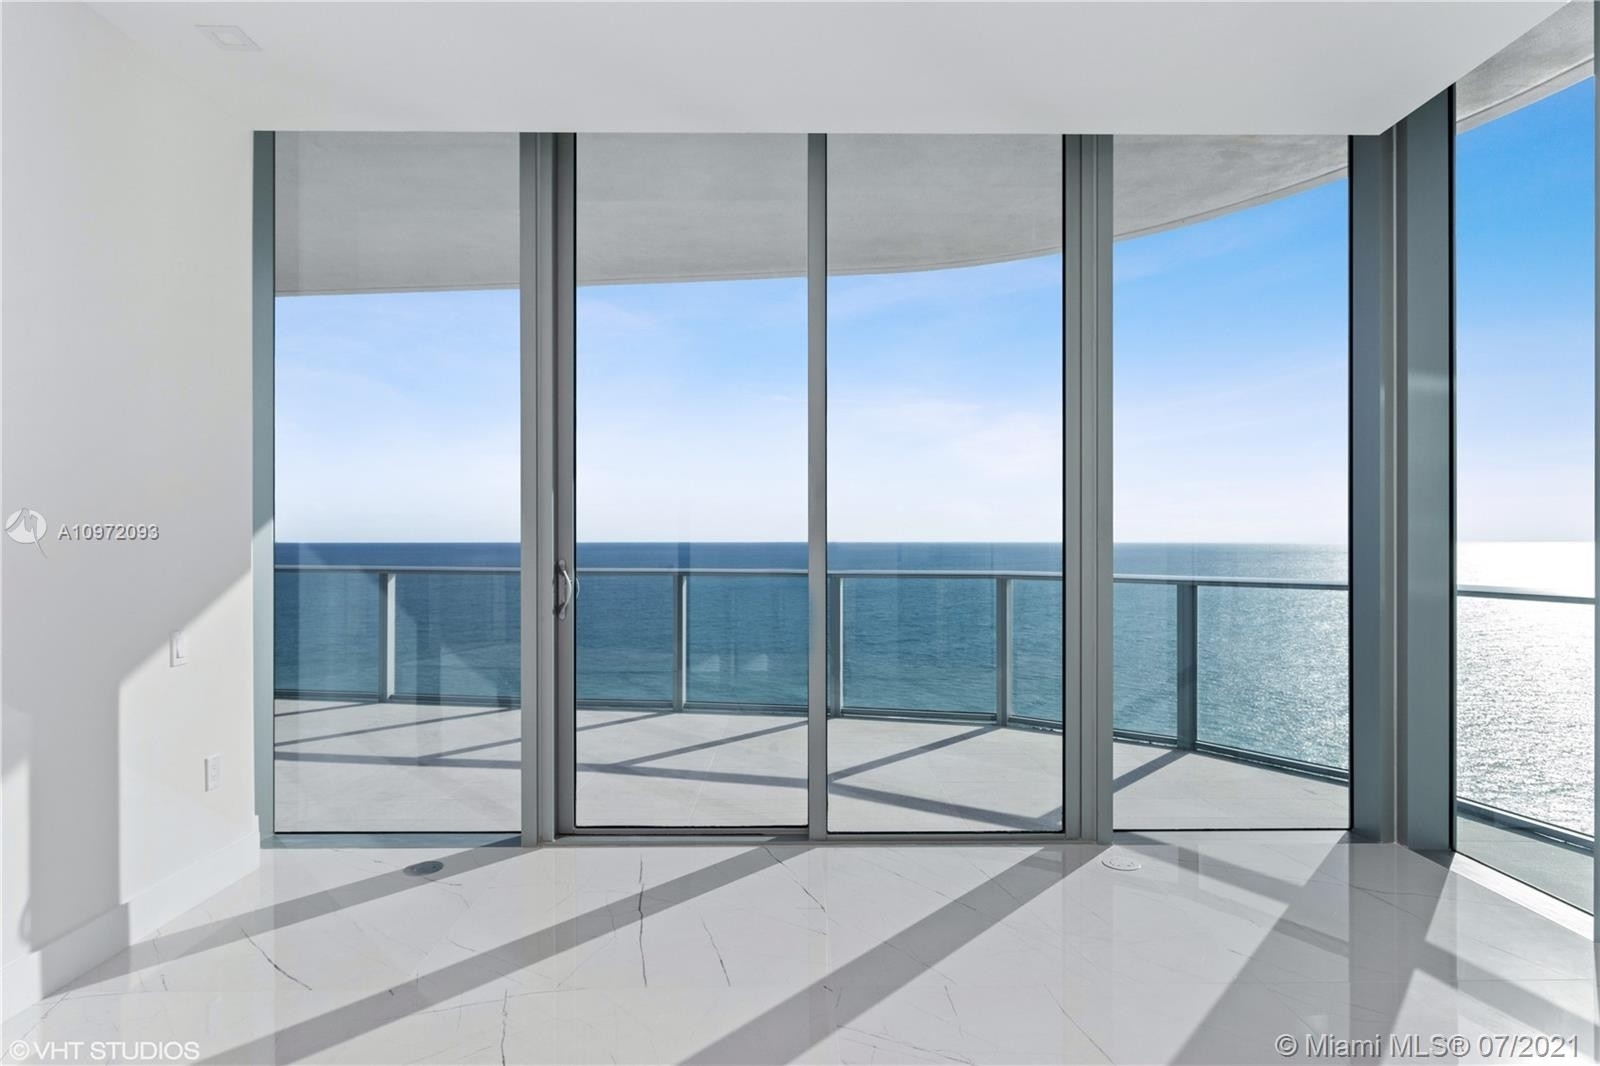 24. Condominiums for Sale at 17475 Collins Ave , 1501 Sunny Isles Beach, FL 33160